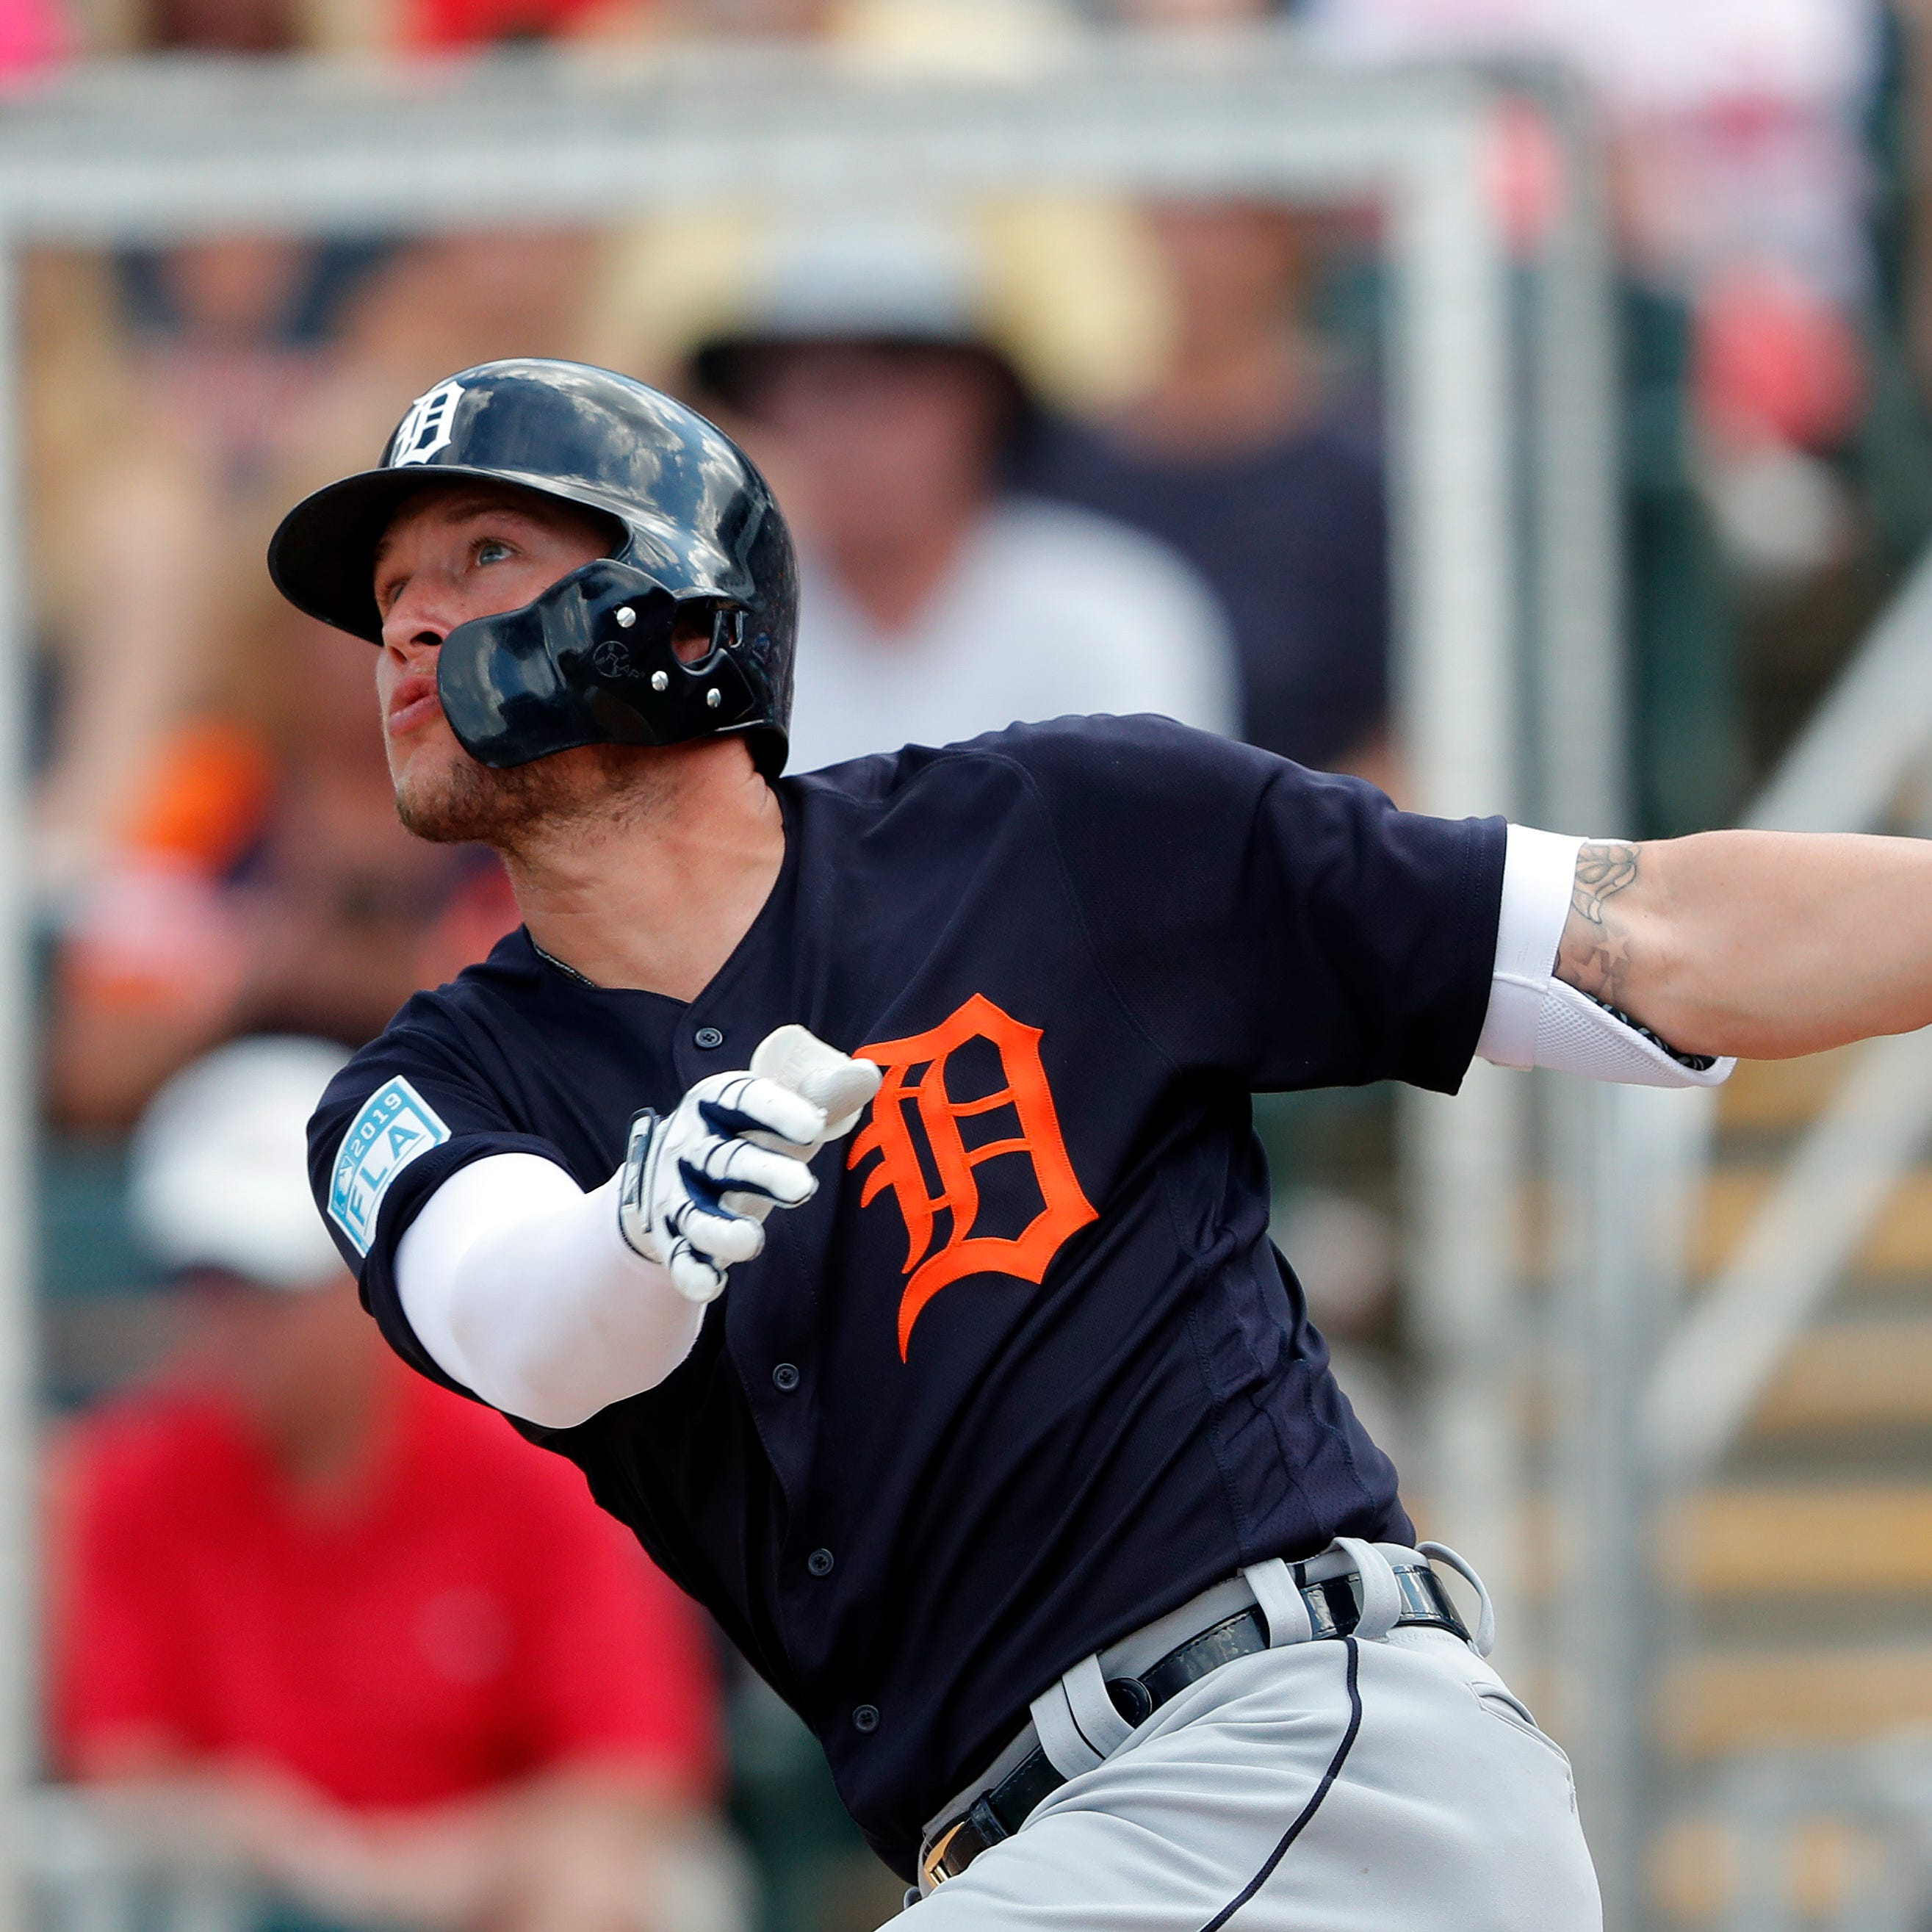 Tigers' JaCoby Jones, Drew VerHagen likely starting season on IL; Opening Day roster back in flux